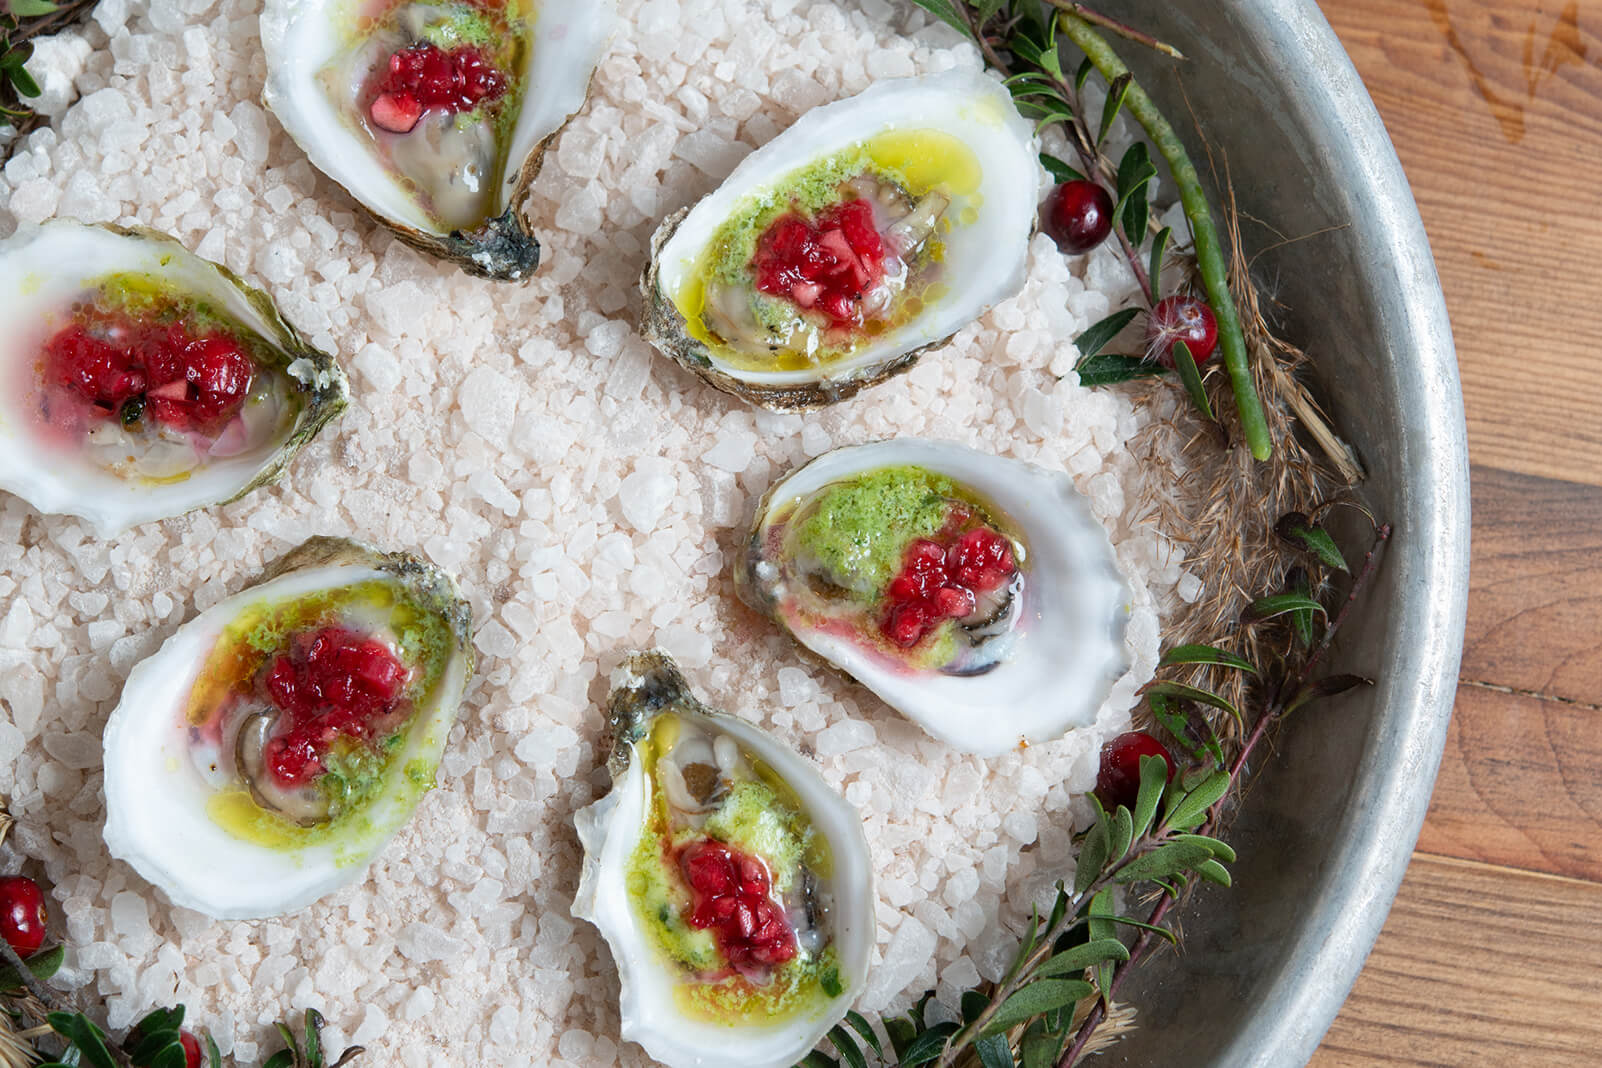 Wellfleet Oysters with Cranberry Mignonette